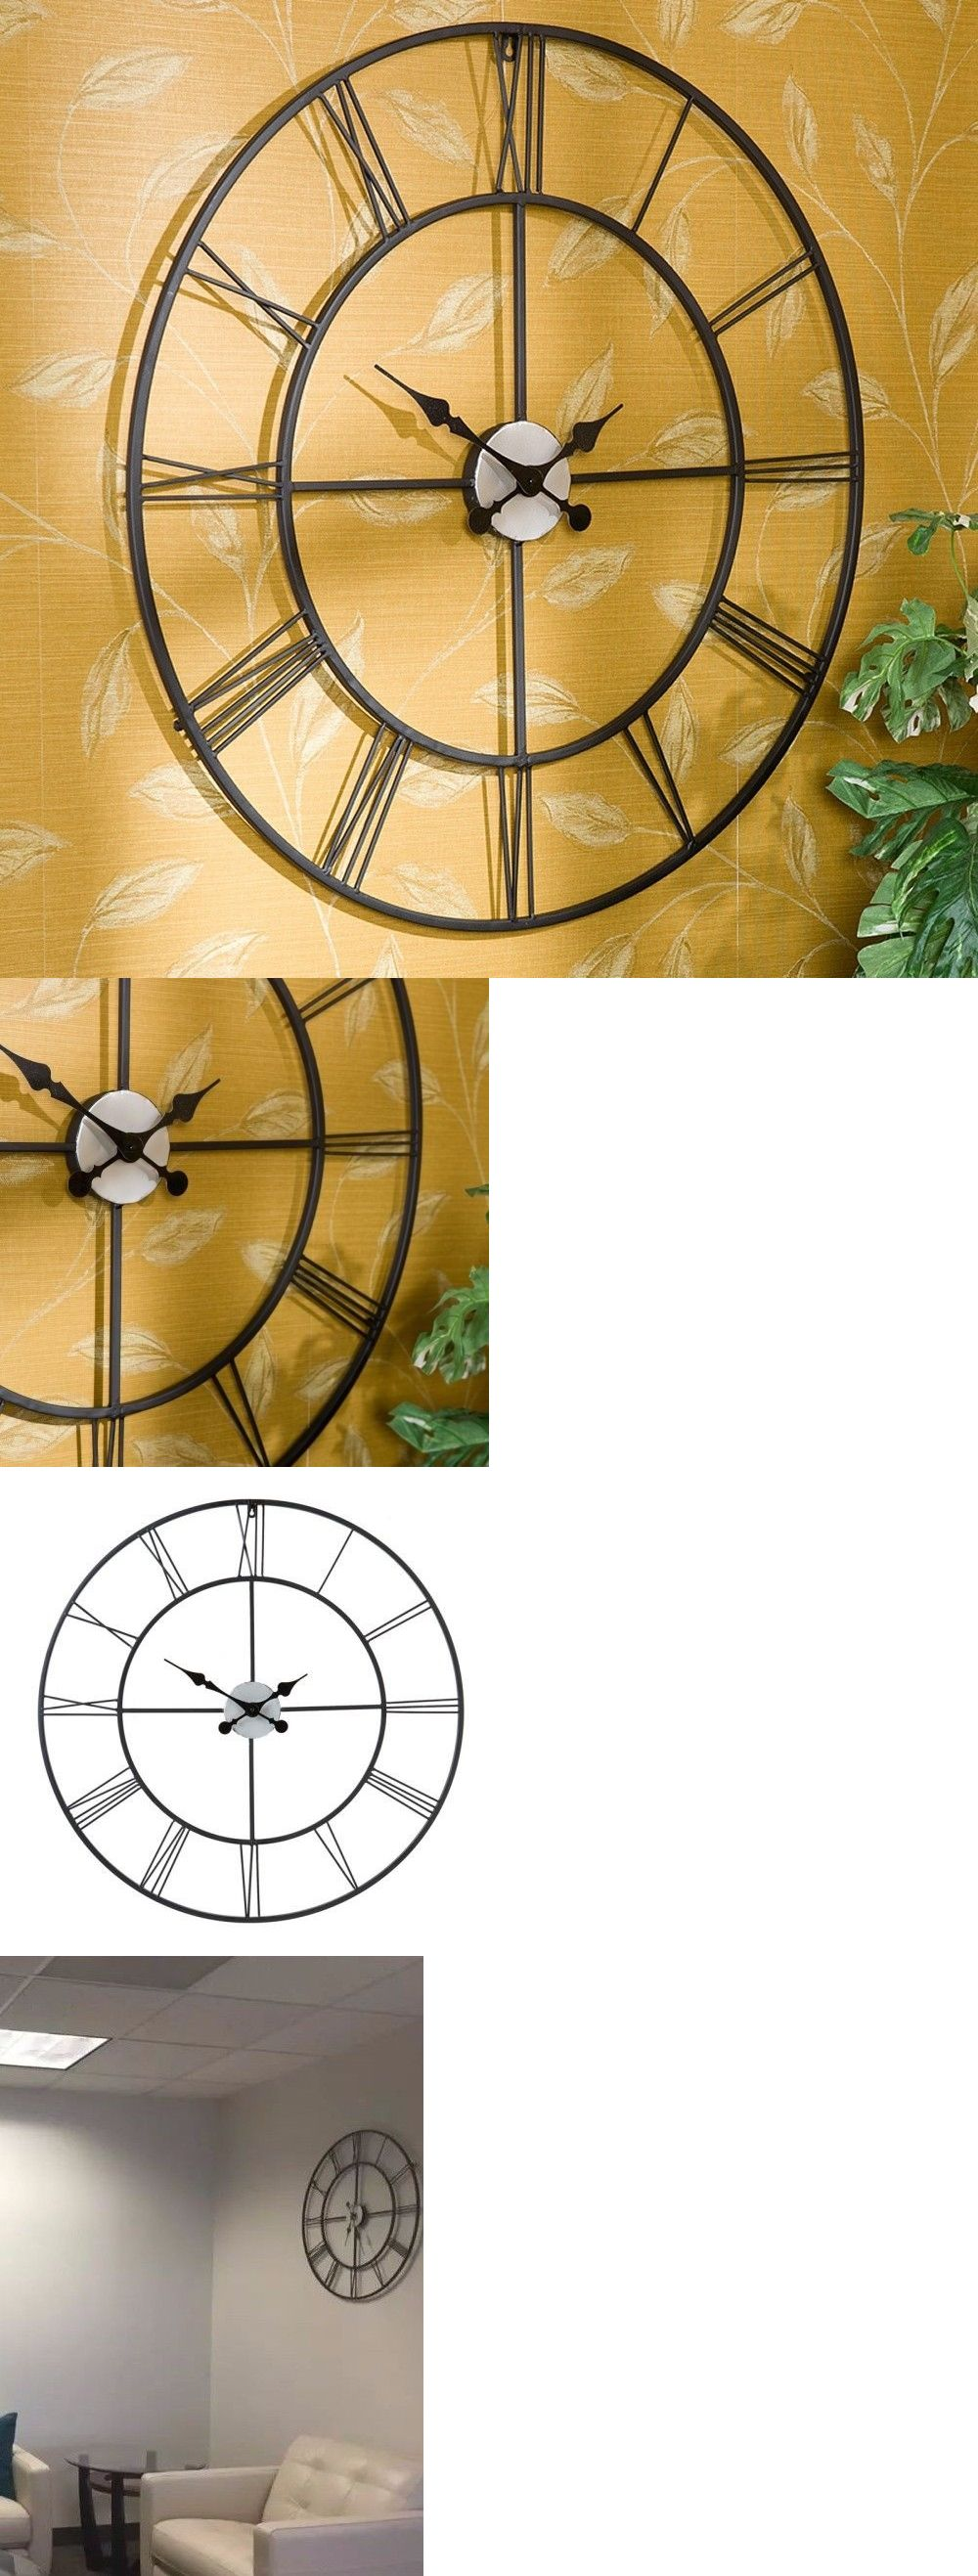 Wall Clocks 20561: Oversized Wall Clock Large Decorative For Living ...